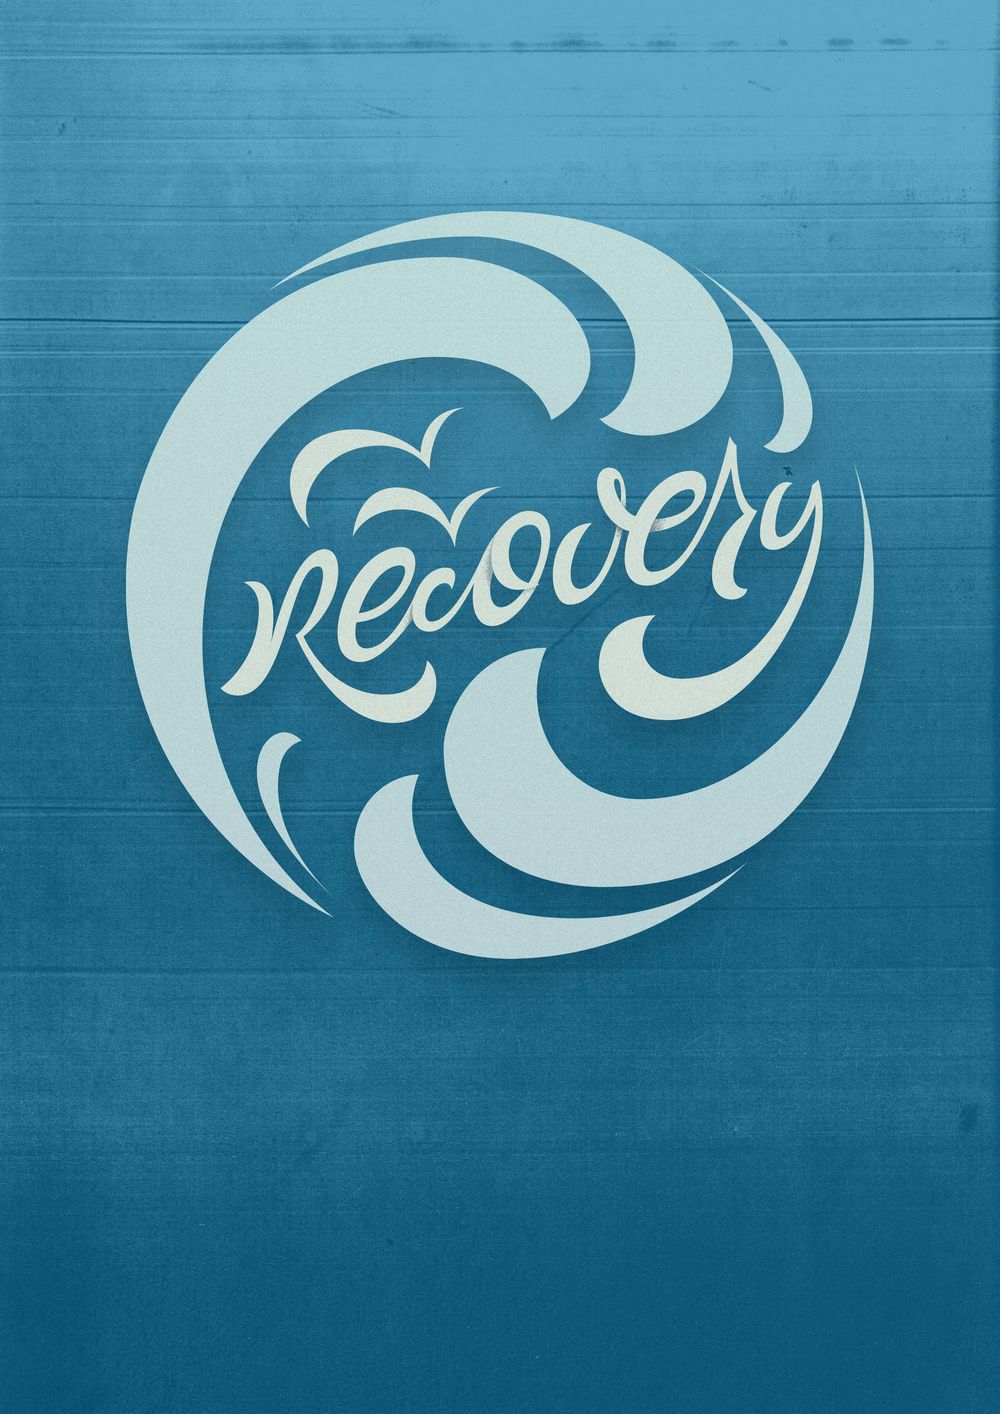 Recovery - image 4 - student project